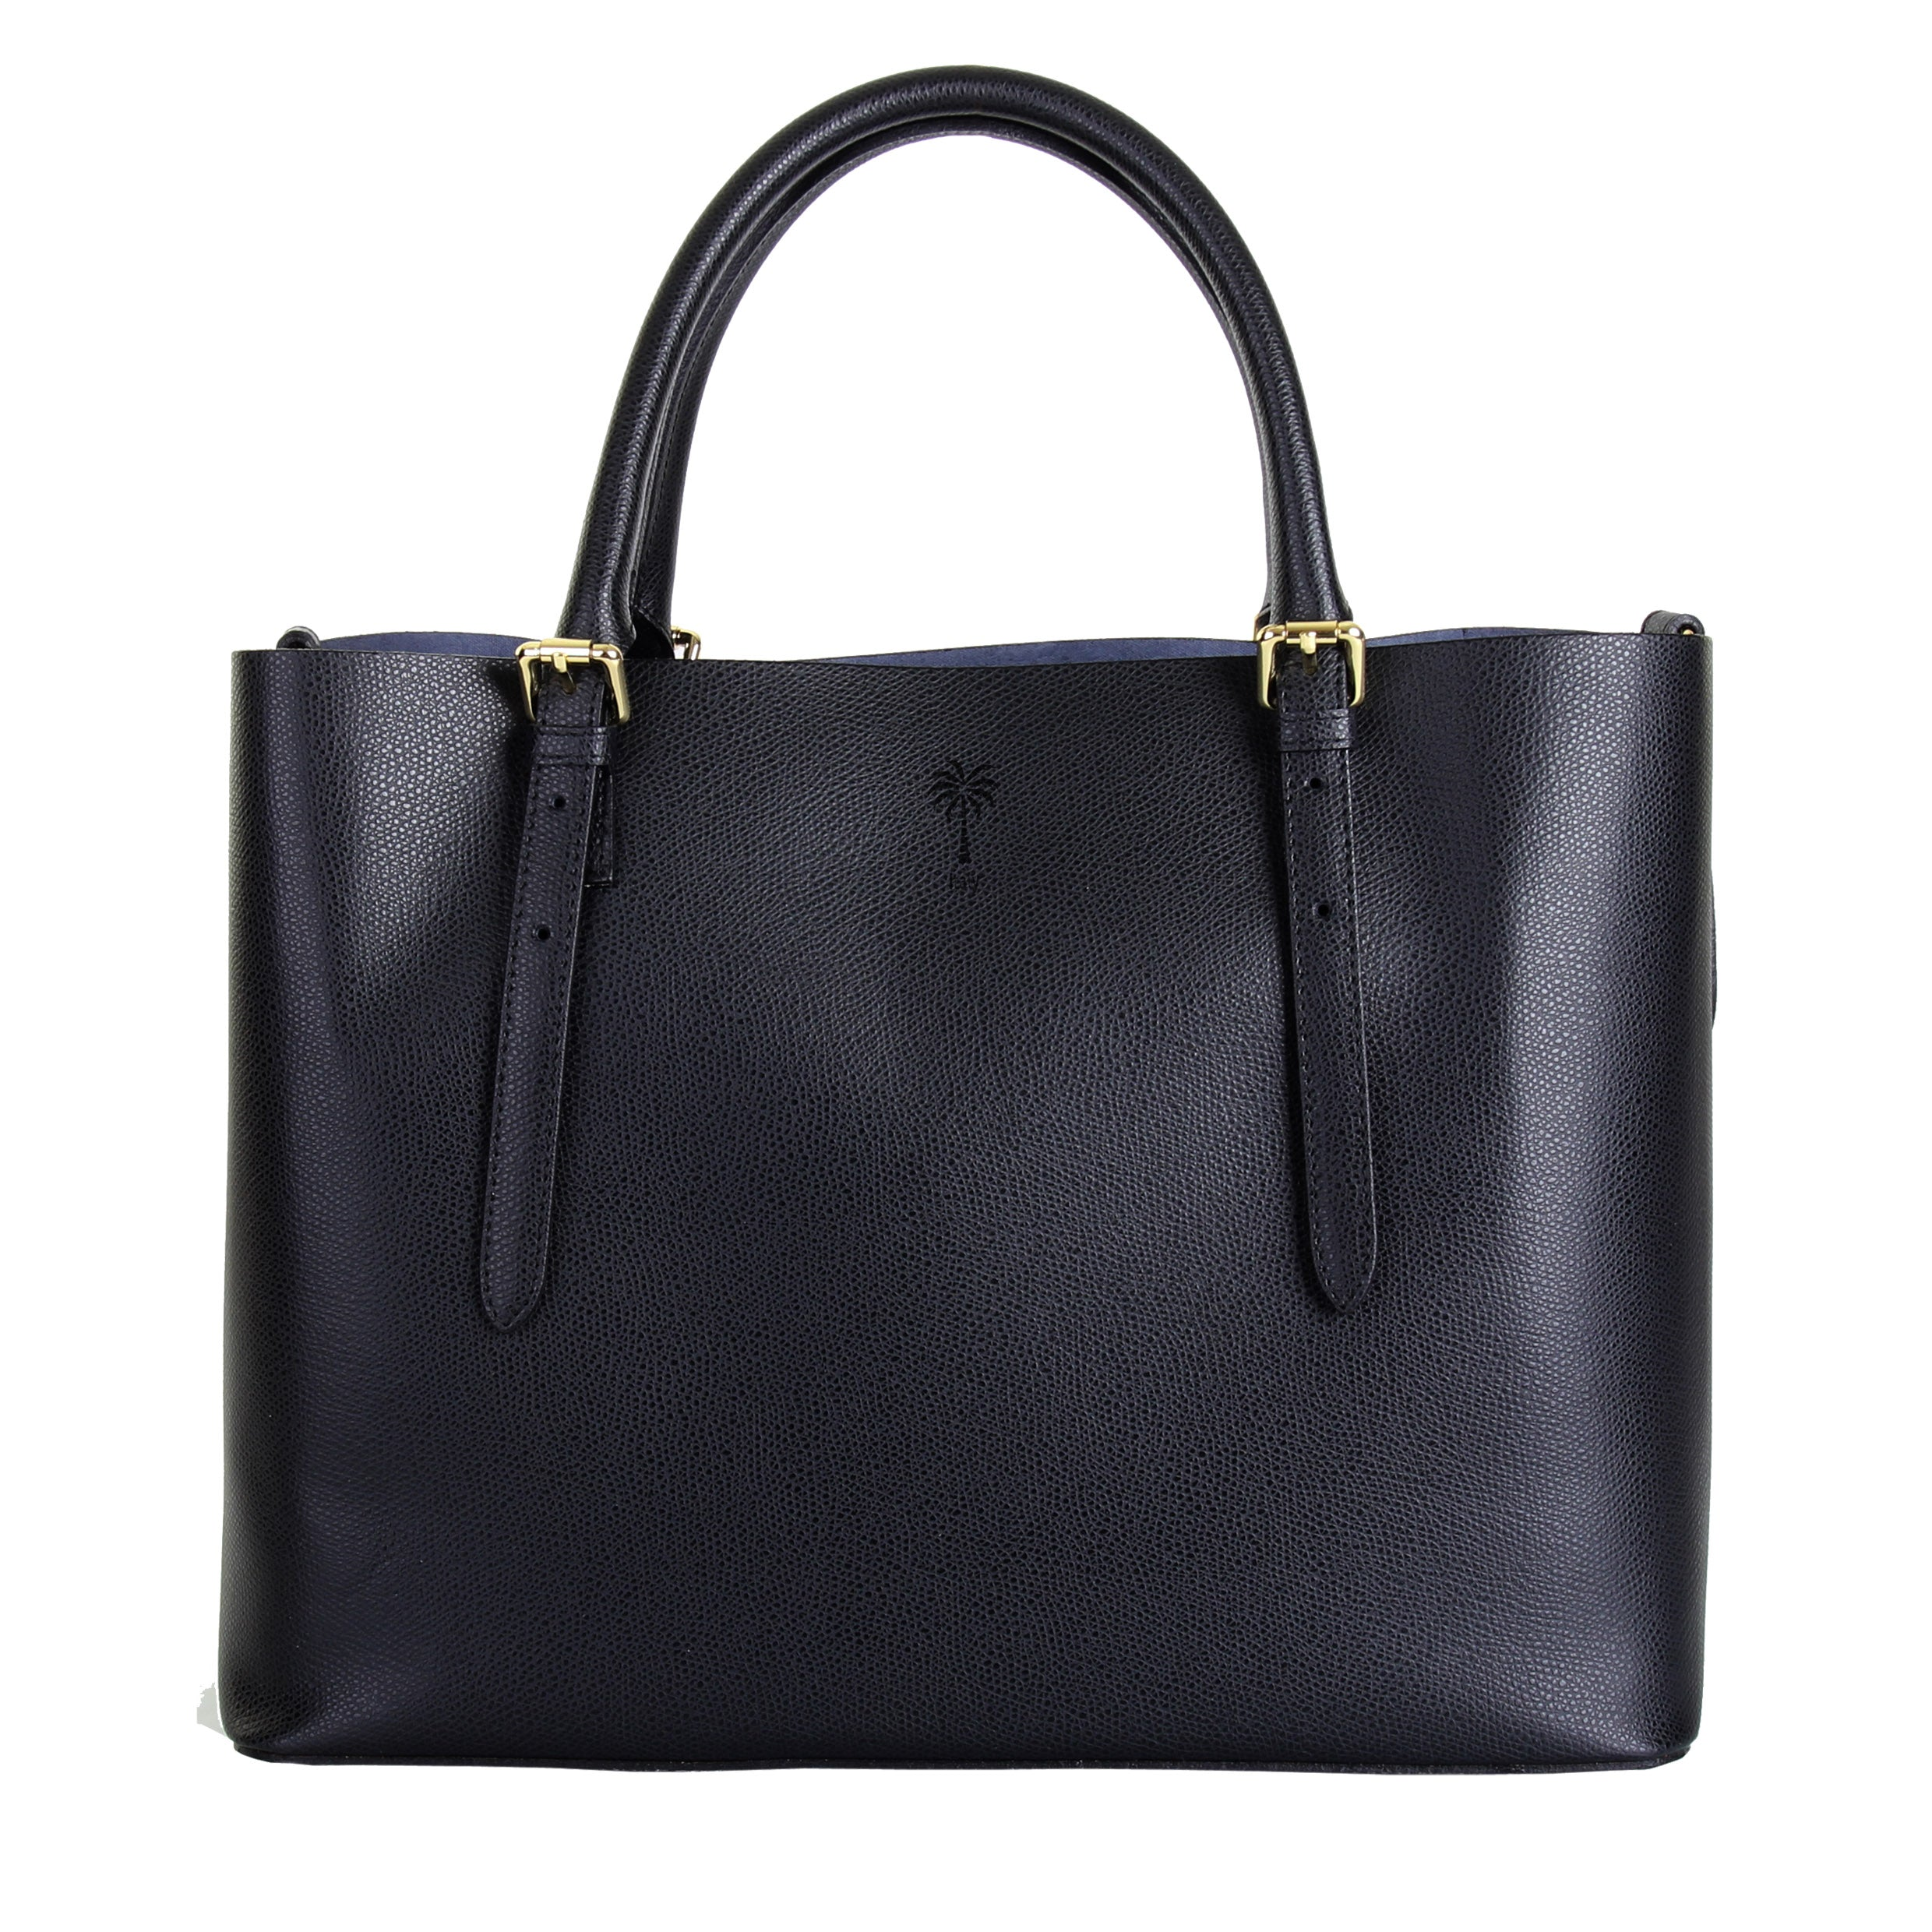 JENNIFER BLACK ITALIAN LEATHER TOTE